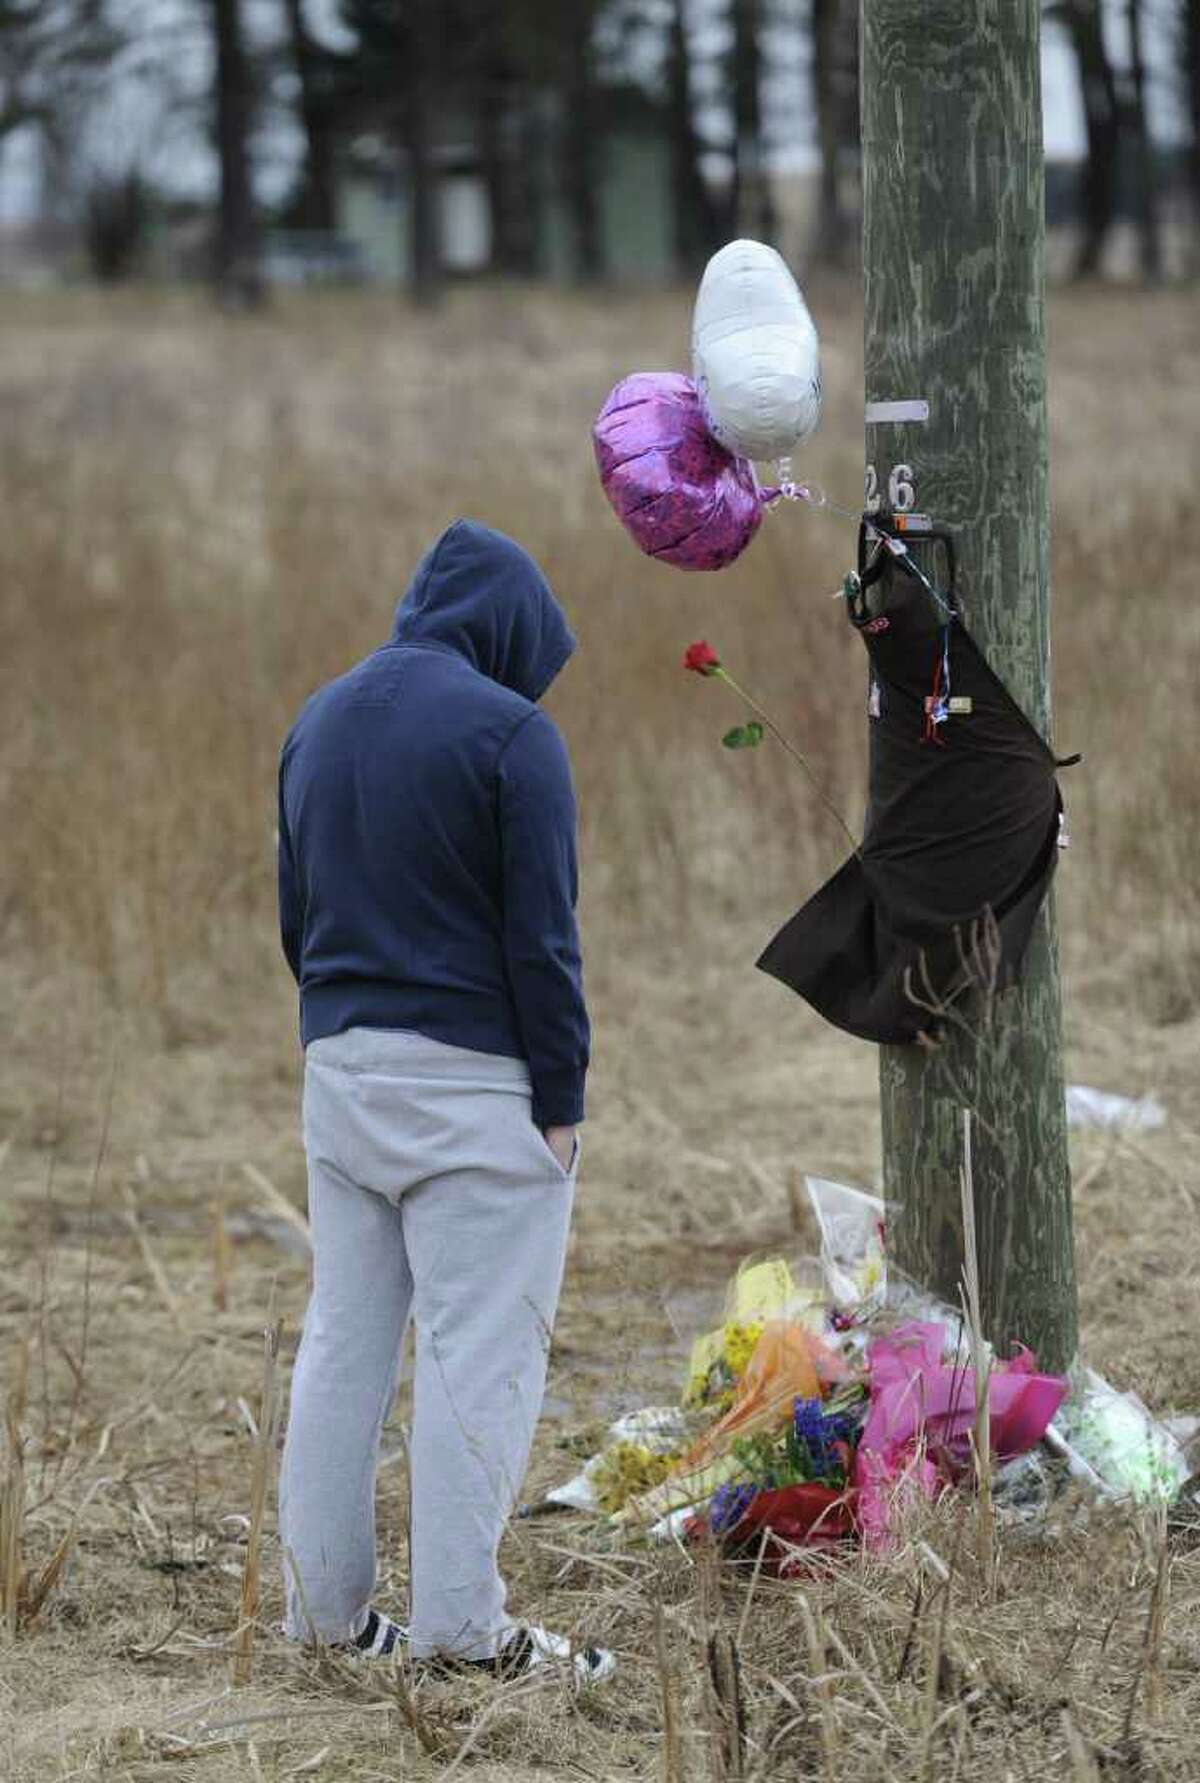 Trevonn Burns, a personal friend of the deceased stands by a makeshift memorial at the base of a utility pole near Johnson Road in Halfmoon, N.Y., the scene of a fatal accident Feb. 16, 2012 which took the life of Travis Taylor, 18, of Mechanicville who was driving a 2002 Chevrolet Cavalier at 9:18 p.m. last night when he lost control and the vehicle struck the telephone pole, police said. ( Skip Dickstein / Times Union)